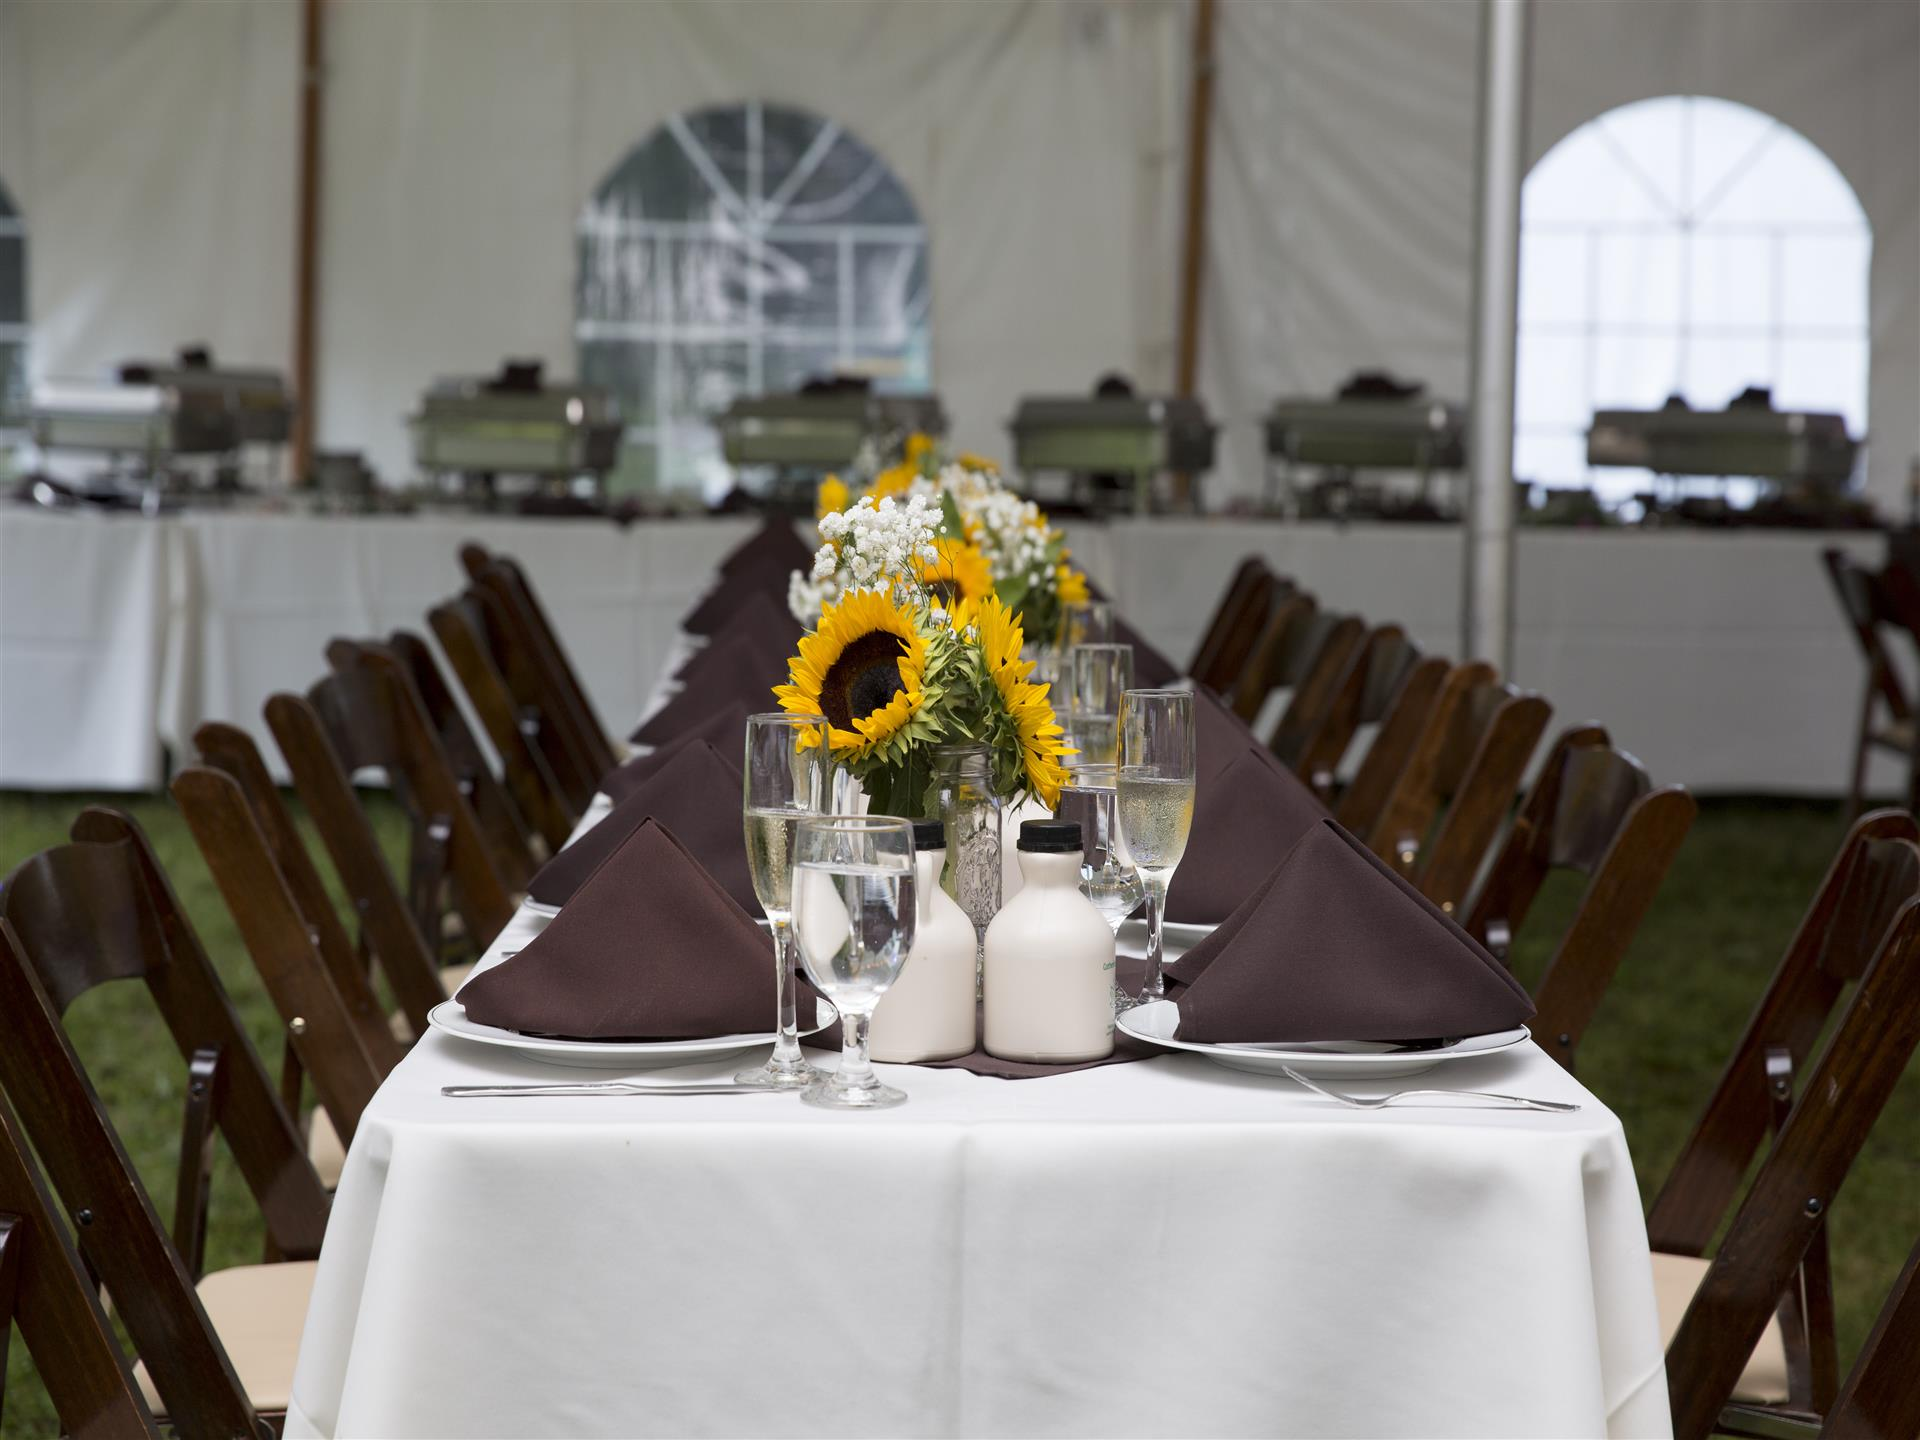 a long table with a white table cloth, wooden chairs, brown napkins, place settings and bouquets with sunflowers